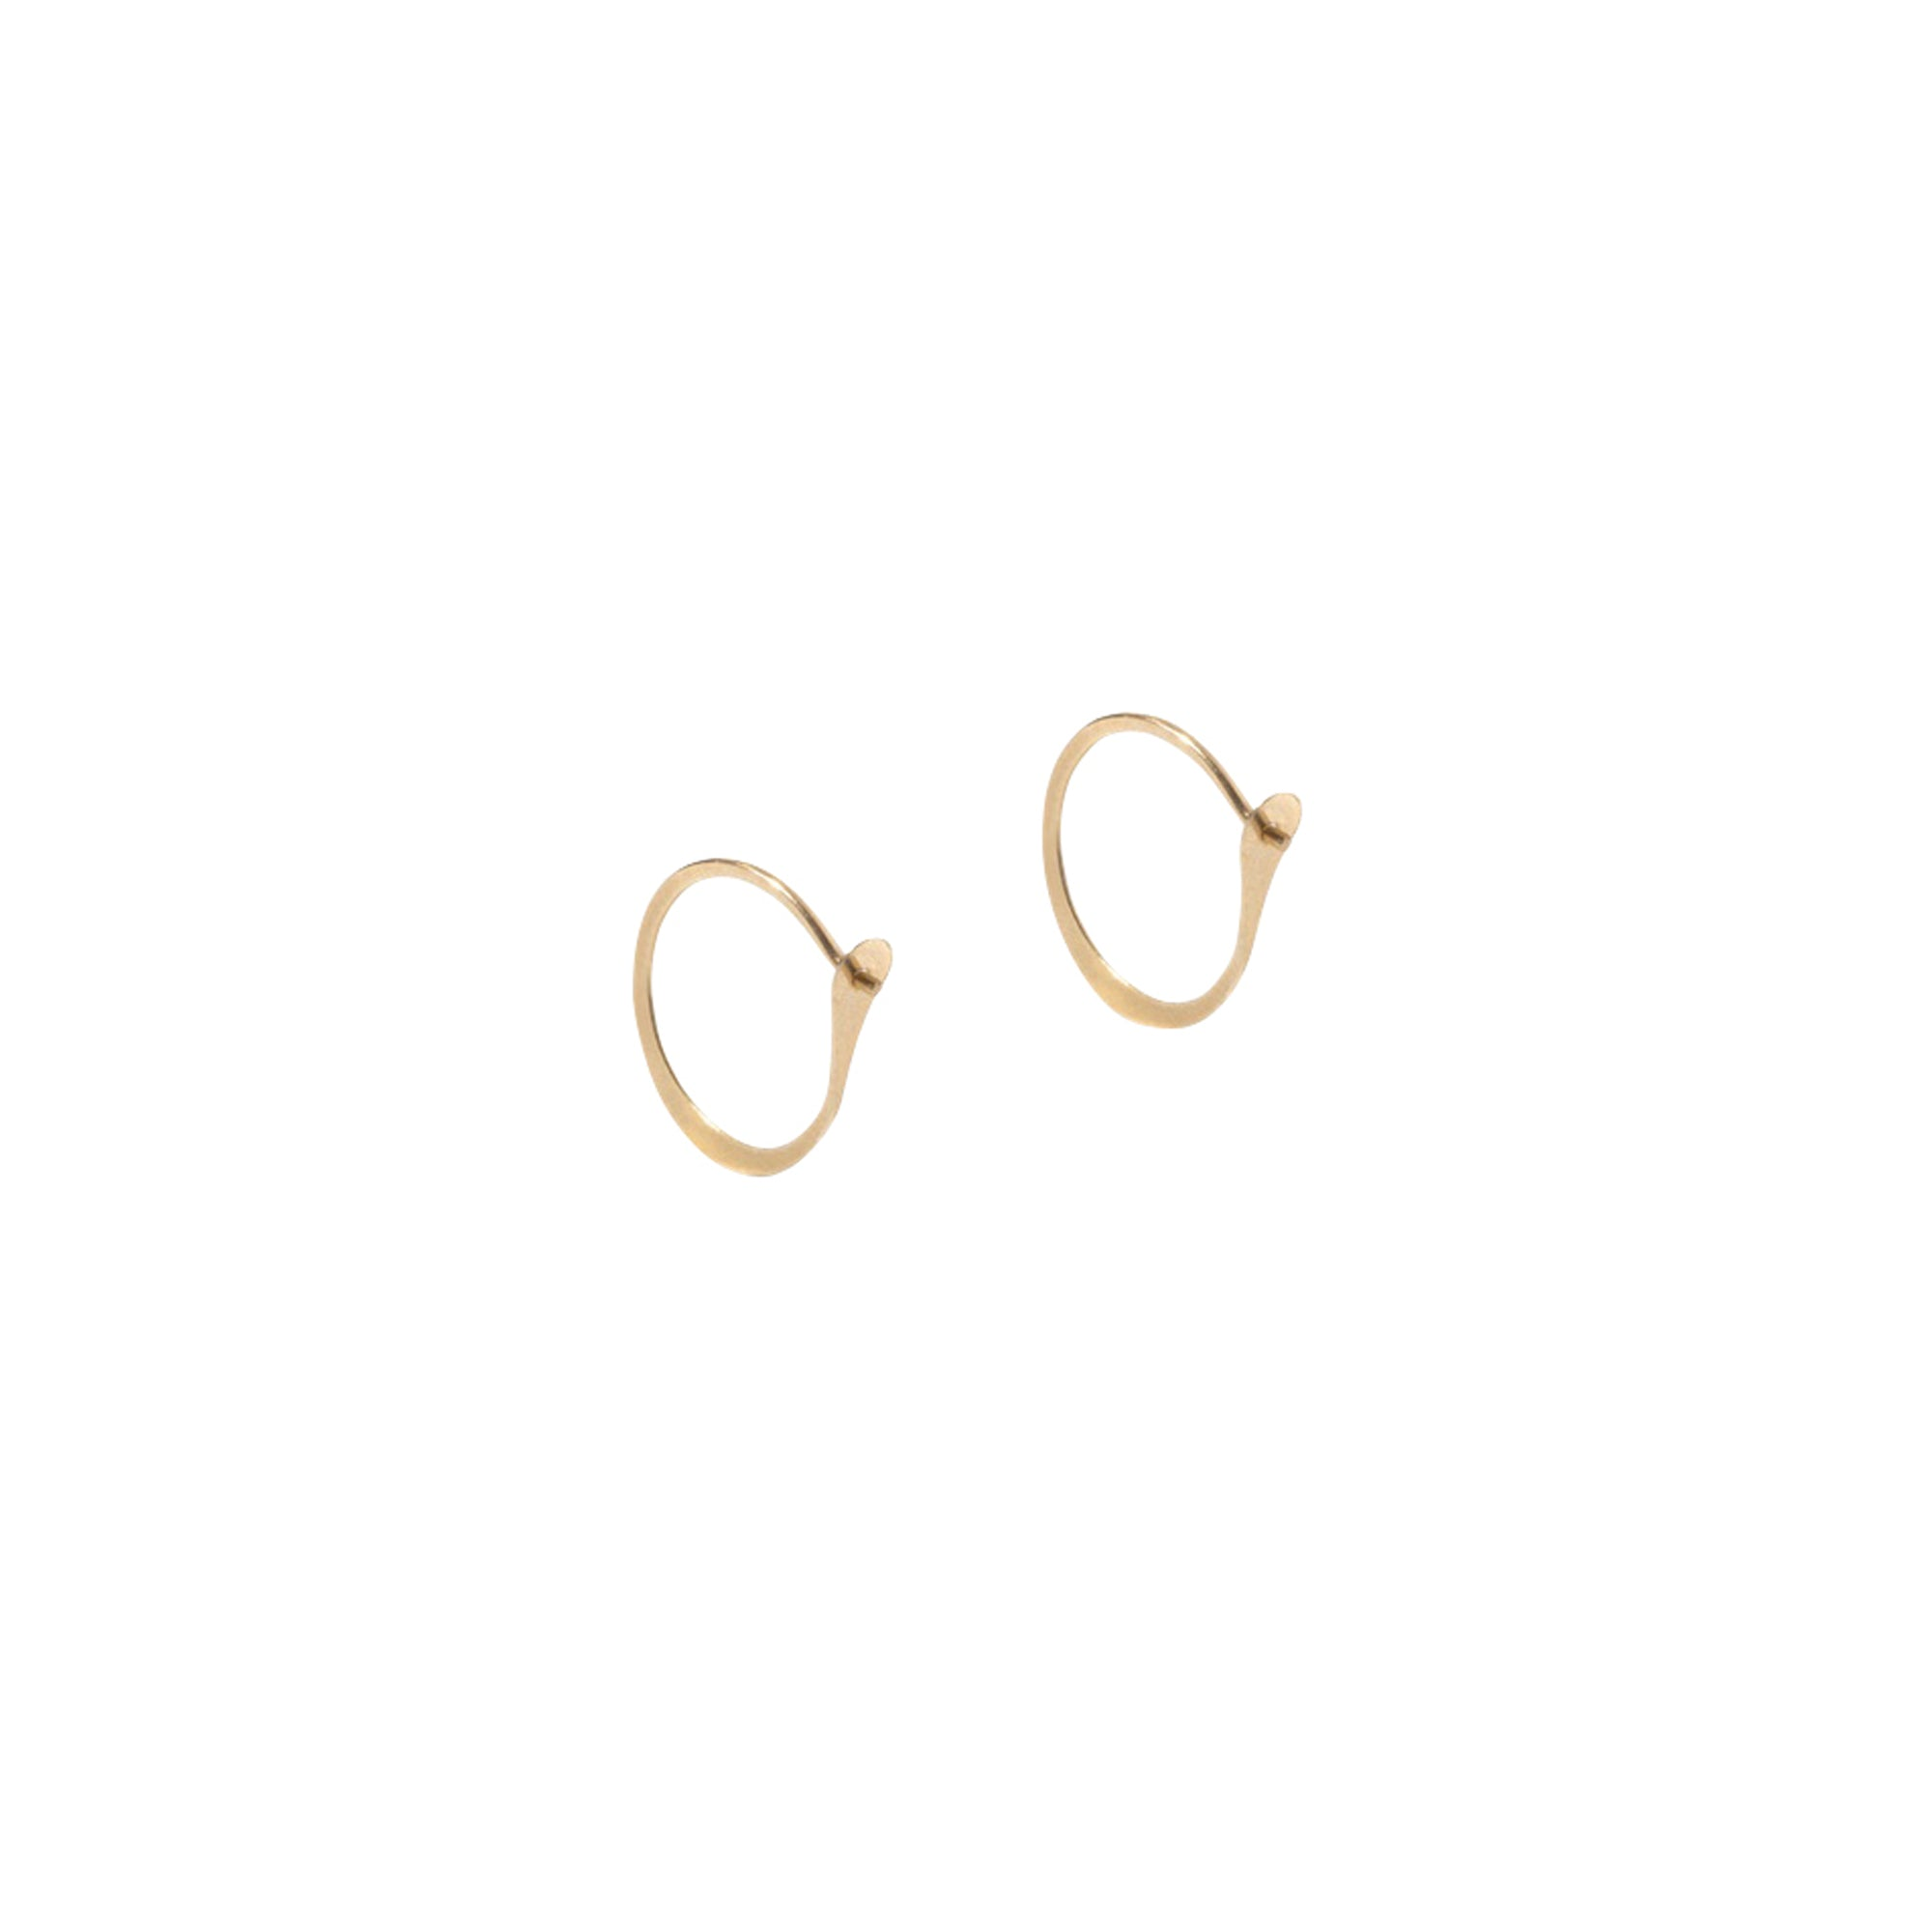 Melissa Joy Manning Round Hoops - Gold (S) - Earrings - Broken English Jewelry